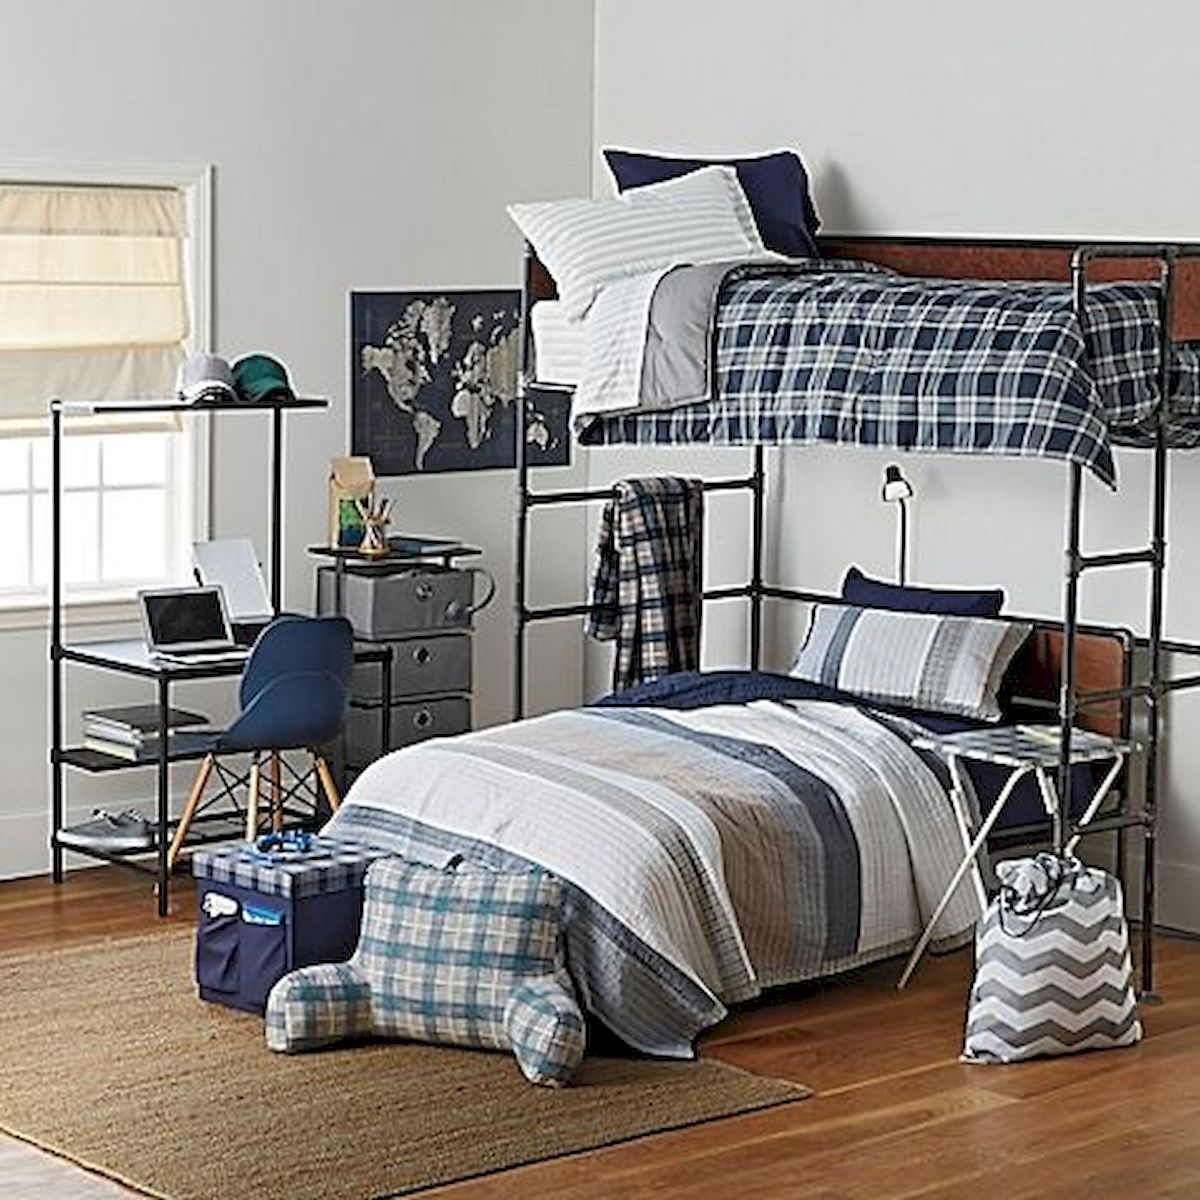 33 Ideas For Small Apartment Bedroom College (17)